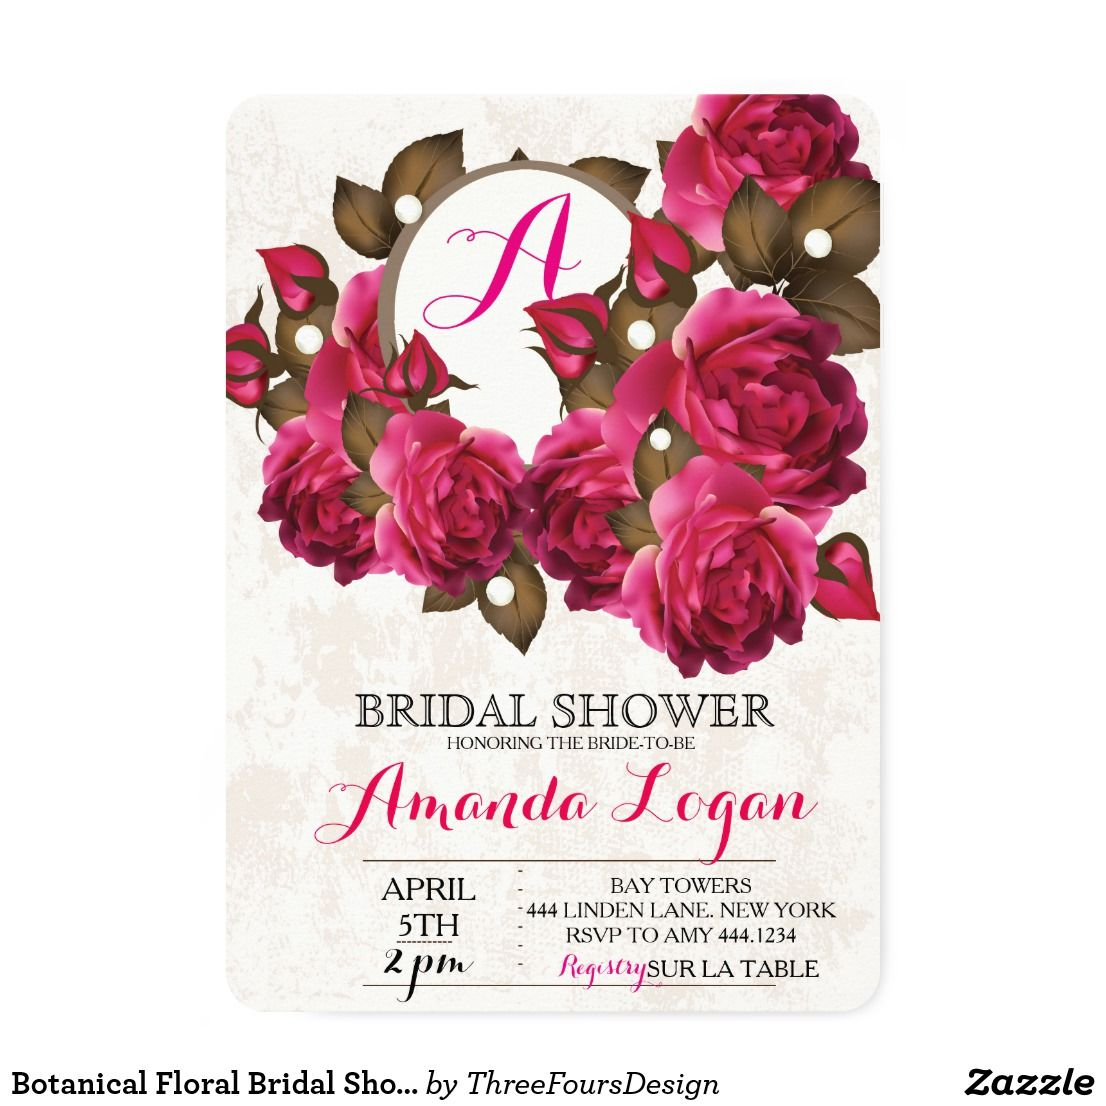 Botanical Floral Bridal Shower Invitations | Bridal Shower ...